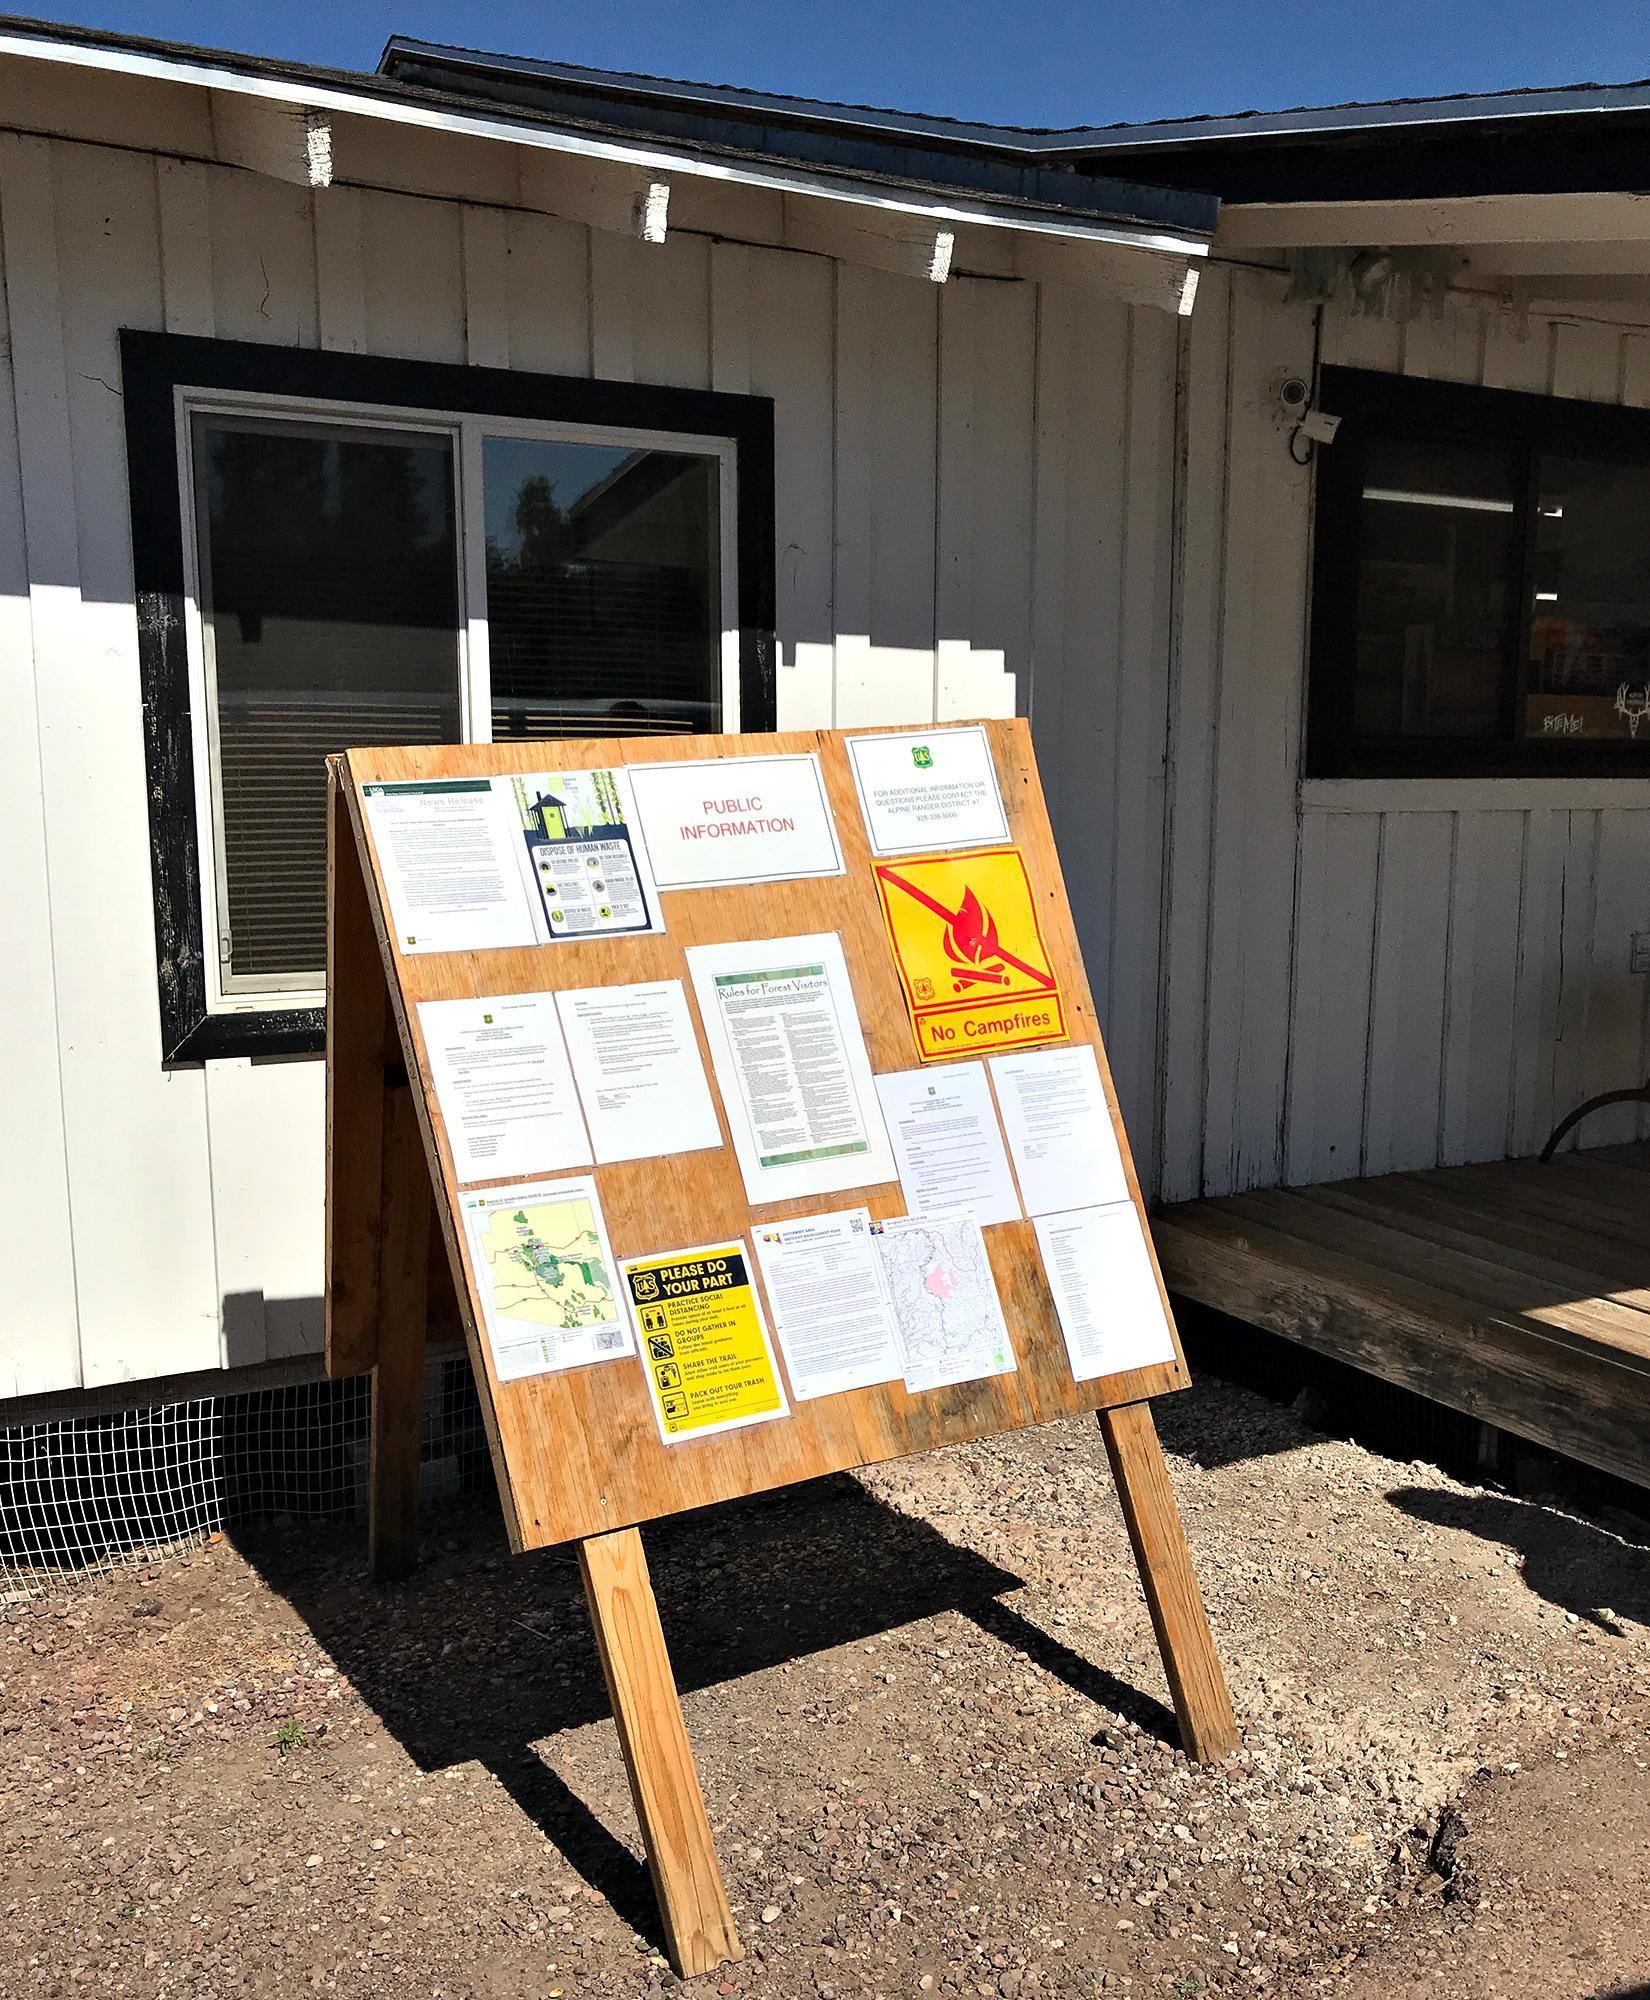 Large wooden slant board with multiple paper fliers. Some flier titles read: Public Information, No Campfires, Rules for Forest Visitors, and Please Do Your Part.